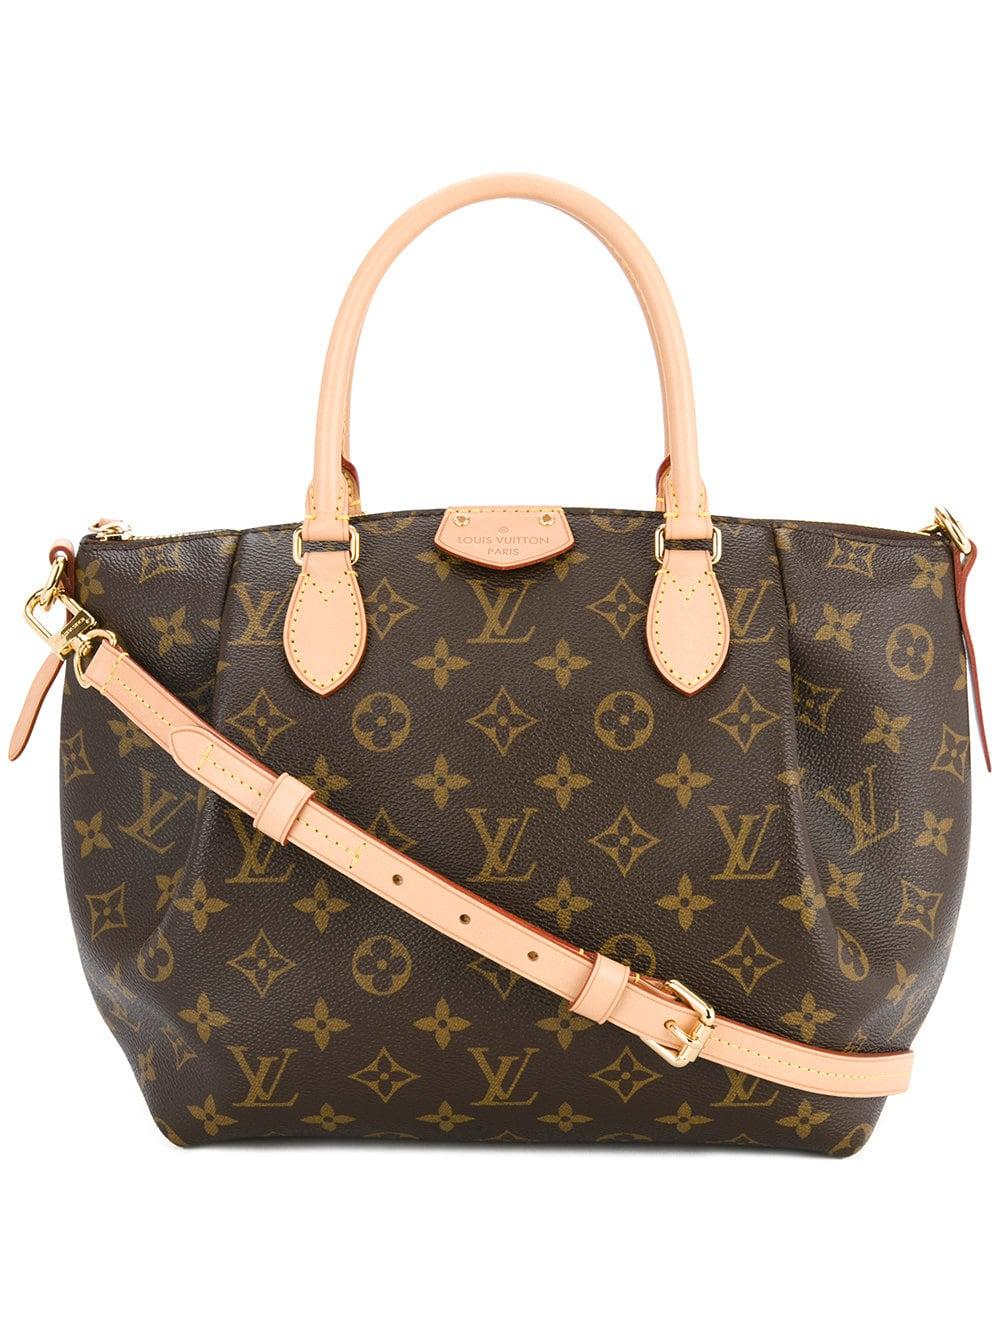 2c605181d9b8 Louis Vuitton Vintage Turenne Pm Tote Bag - Farfetch In Brown